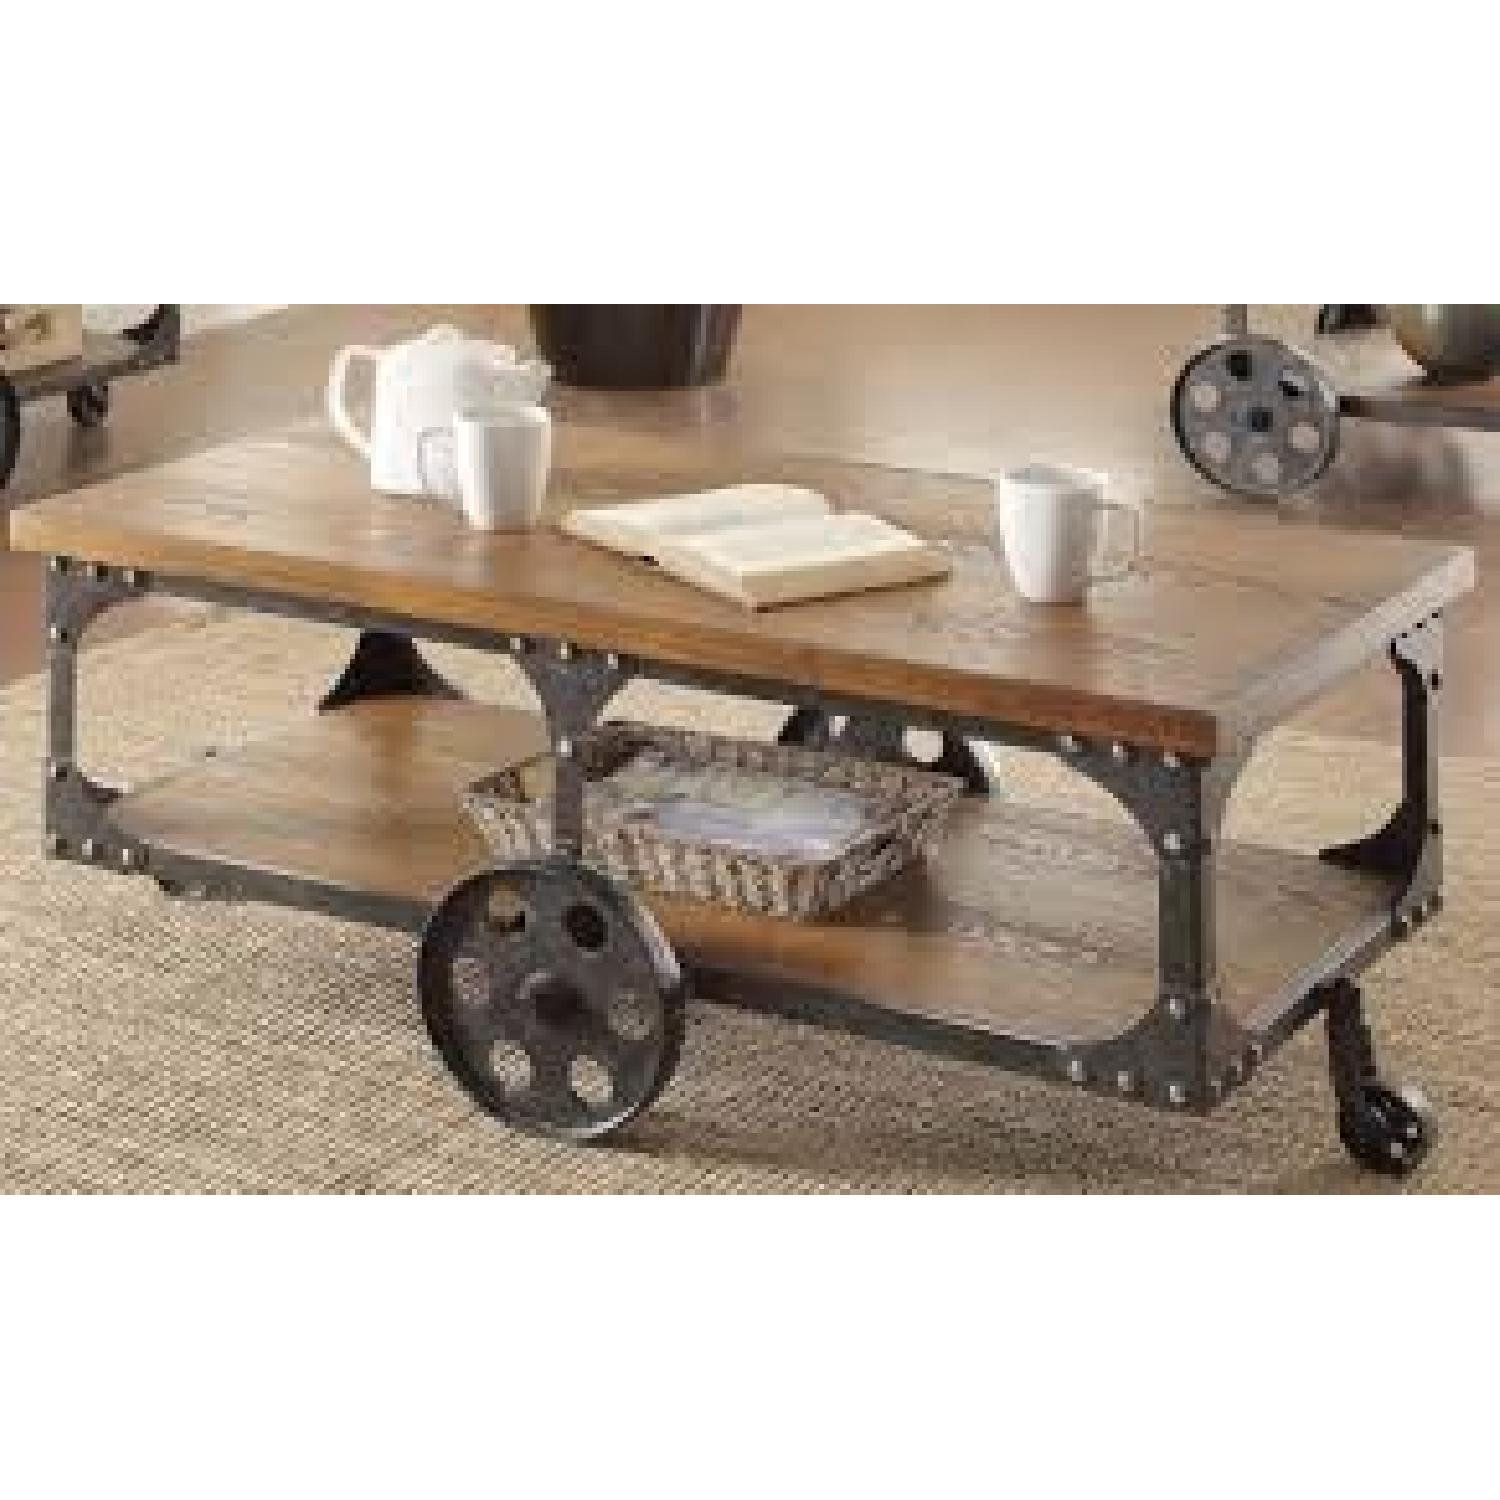 Rustic Brown Coffee Table w/ Metal Wheels - image-1